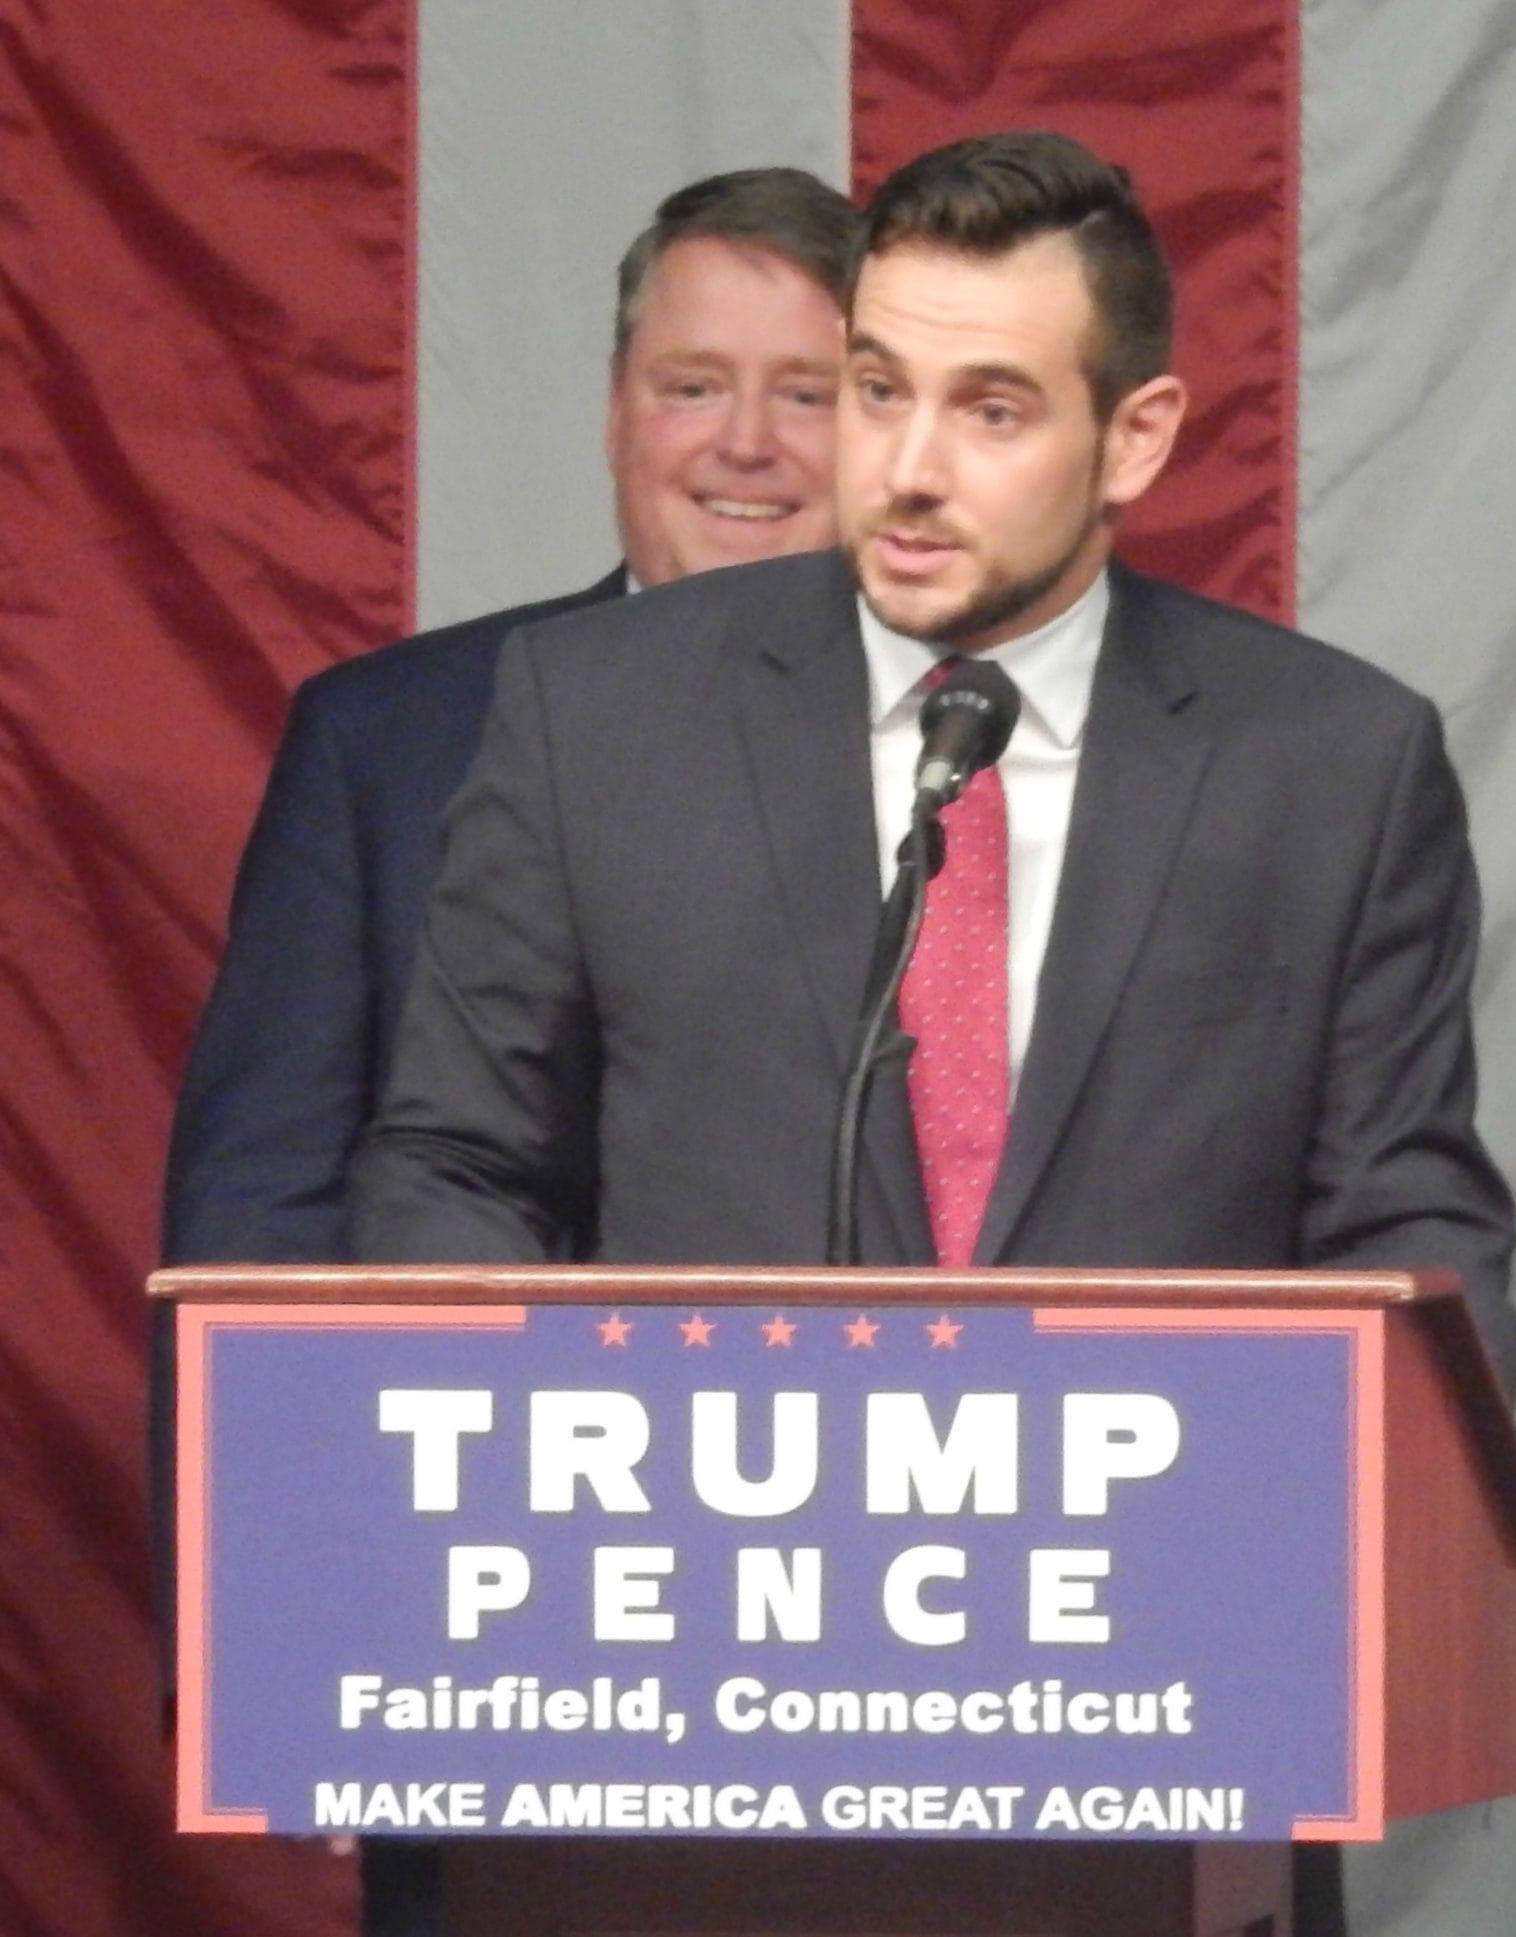 Connecticut Republican Party Chairman J.R. Romano, front, speaks during Donald J. Trump's presidential rally in Fairfield. He is joined by state Sen. Michael McLachlan, R-Danbury, left, state Rep. Dan Carter, R-Bethel, center, and Connecticut Republican Party Vice Chairwoman Annalisa Stravato.